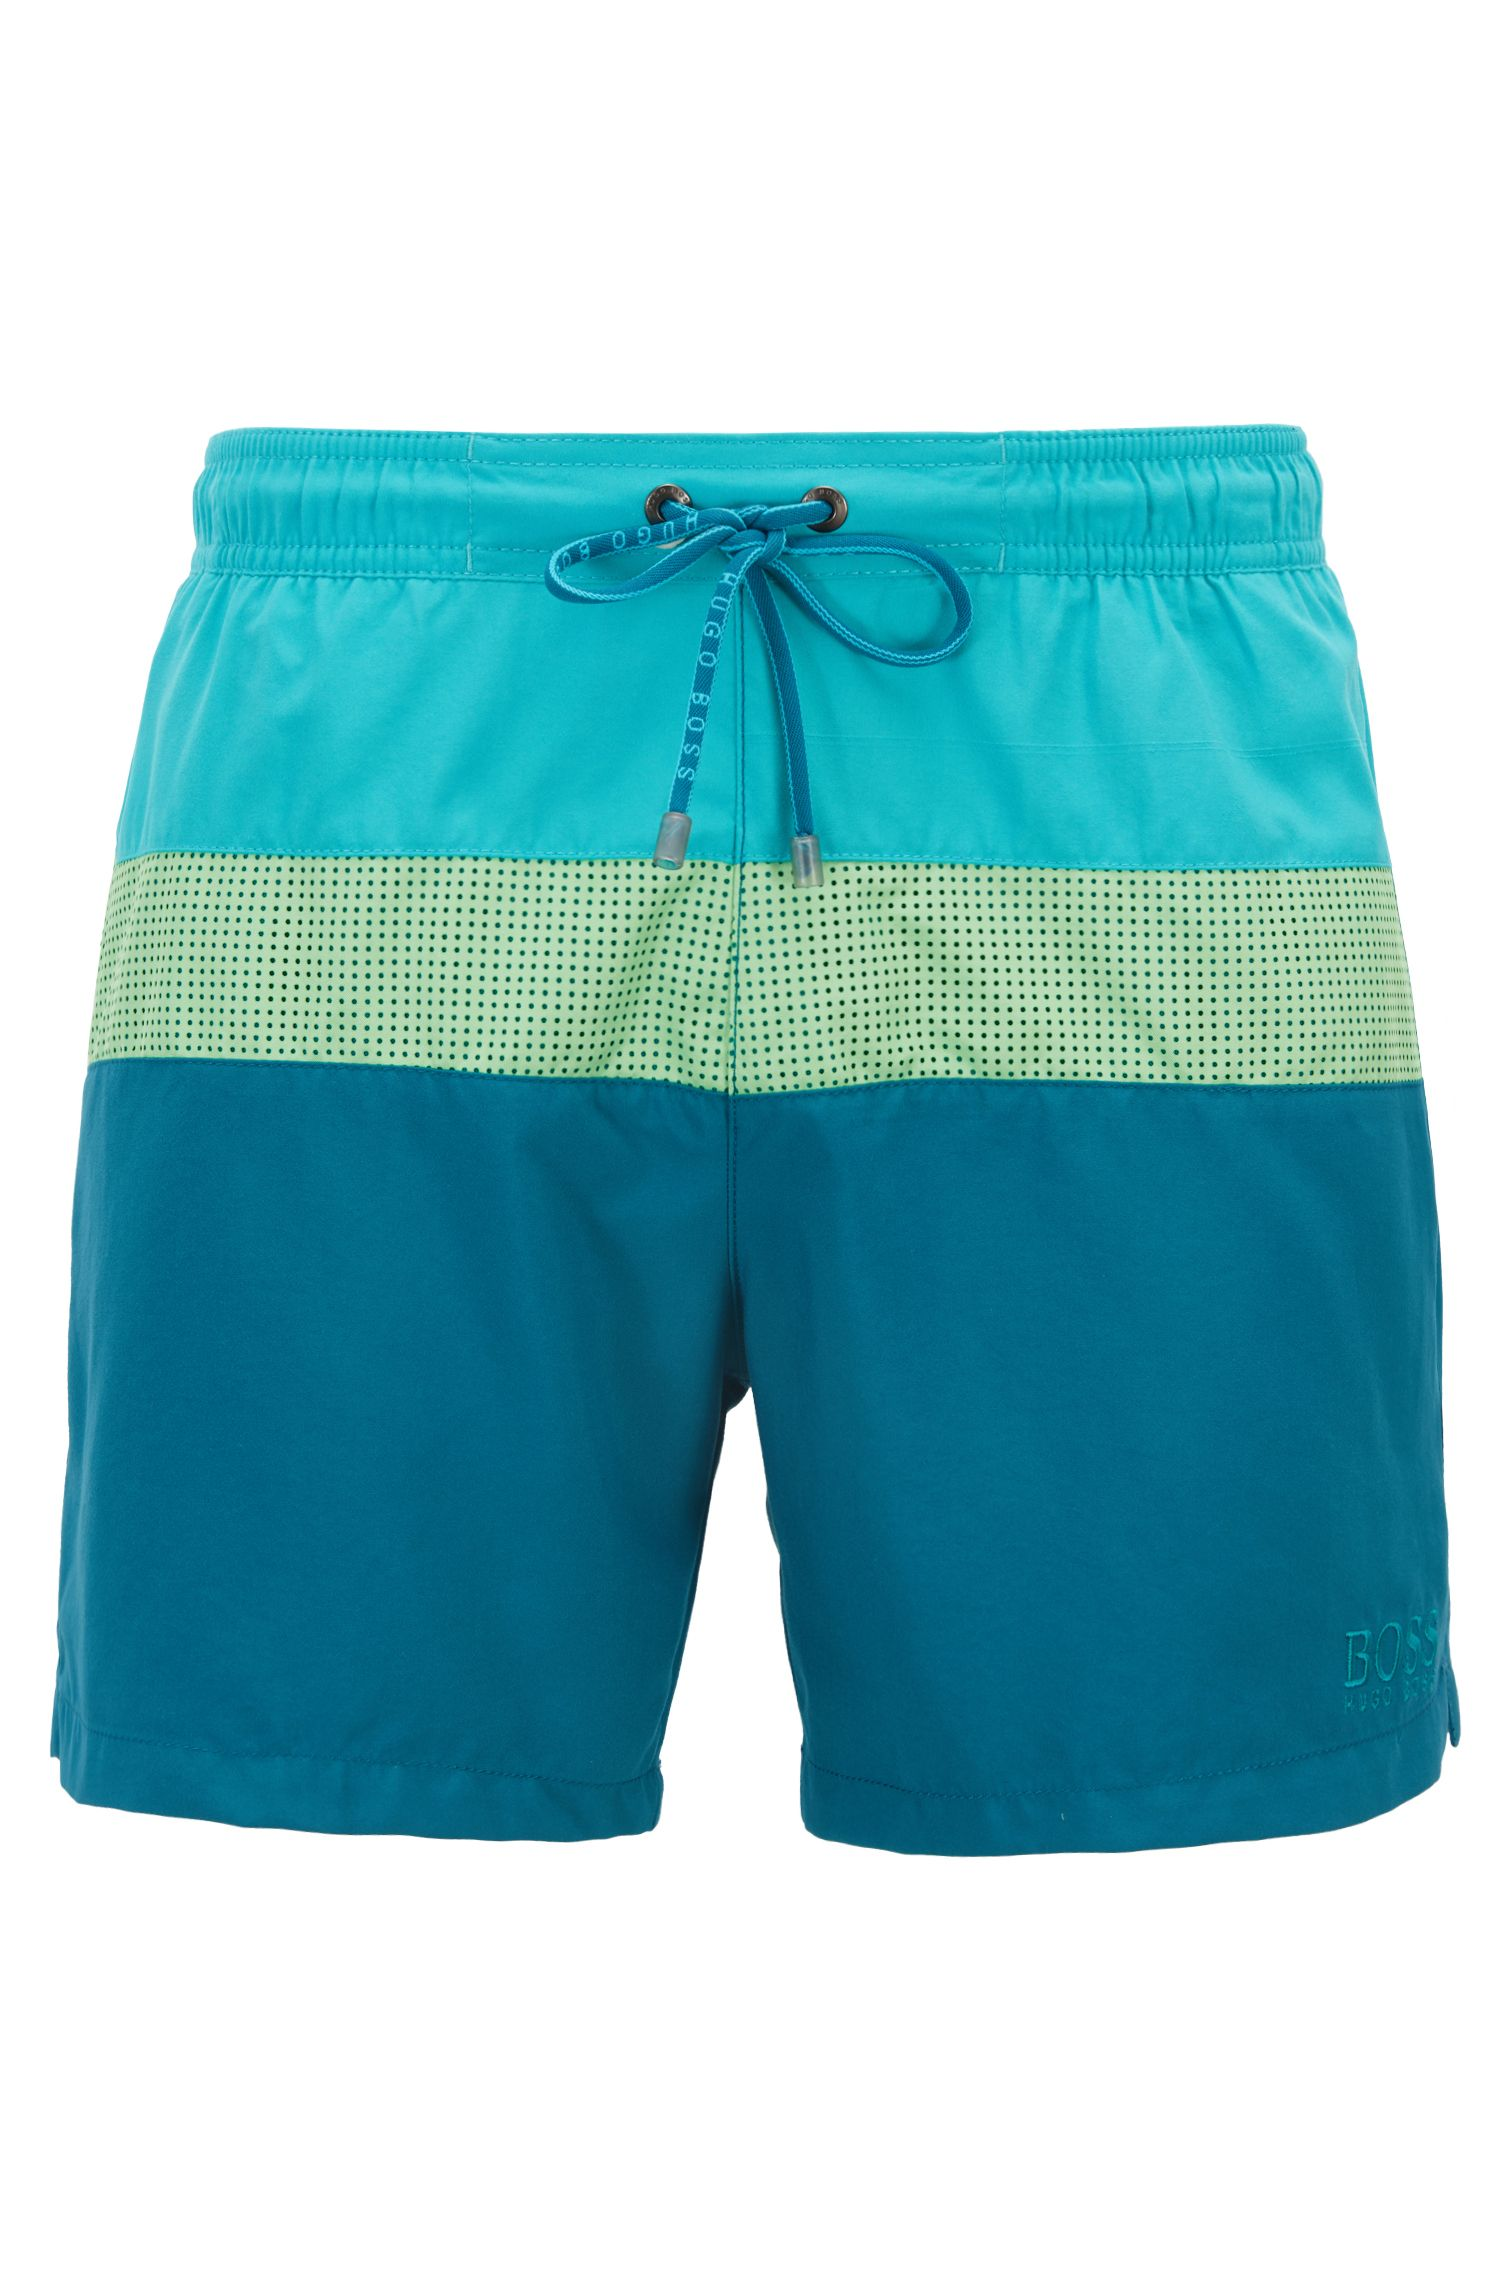 Colorblock swim shorts with laser-cut insert